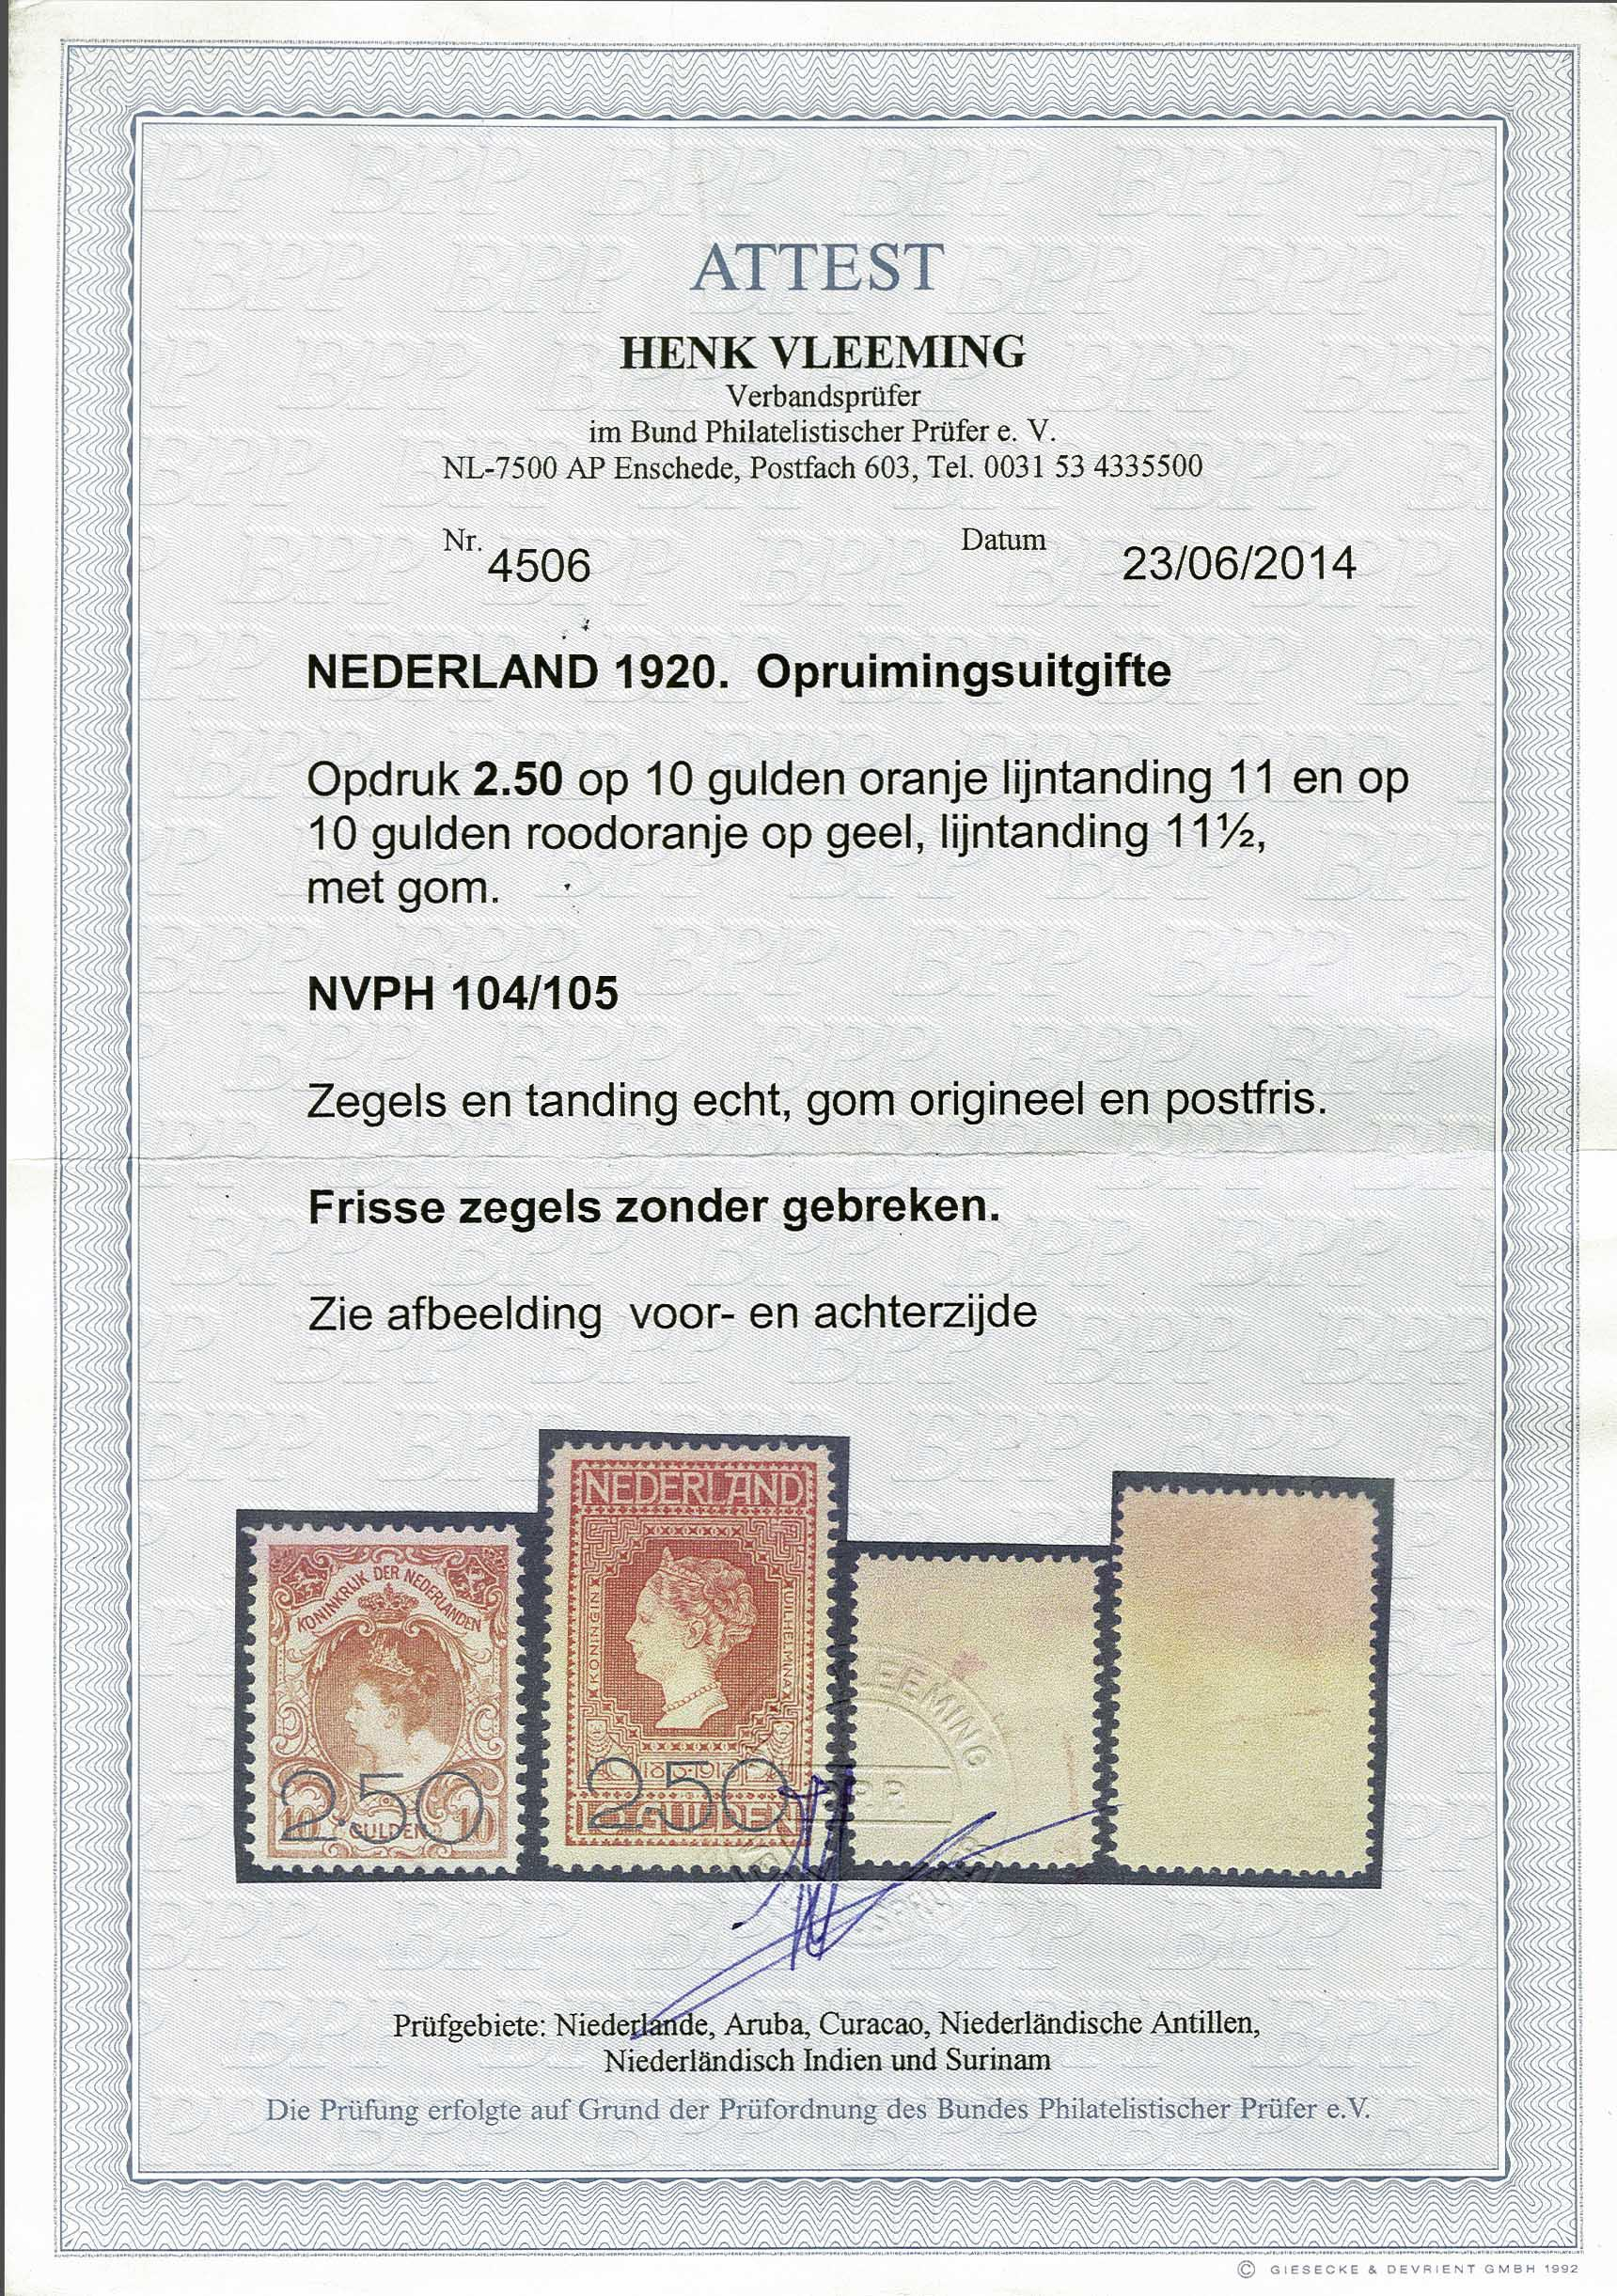 Lot 1849 - Netherlands and former colonies Netherlands -  Corinphila Veilingen Auction 245-246 Day 3 - Netherlands and former colonies - Single lots, Collections and lots, Boxes and literature